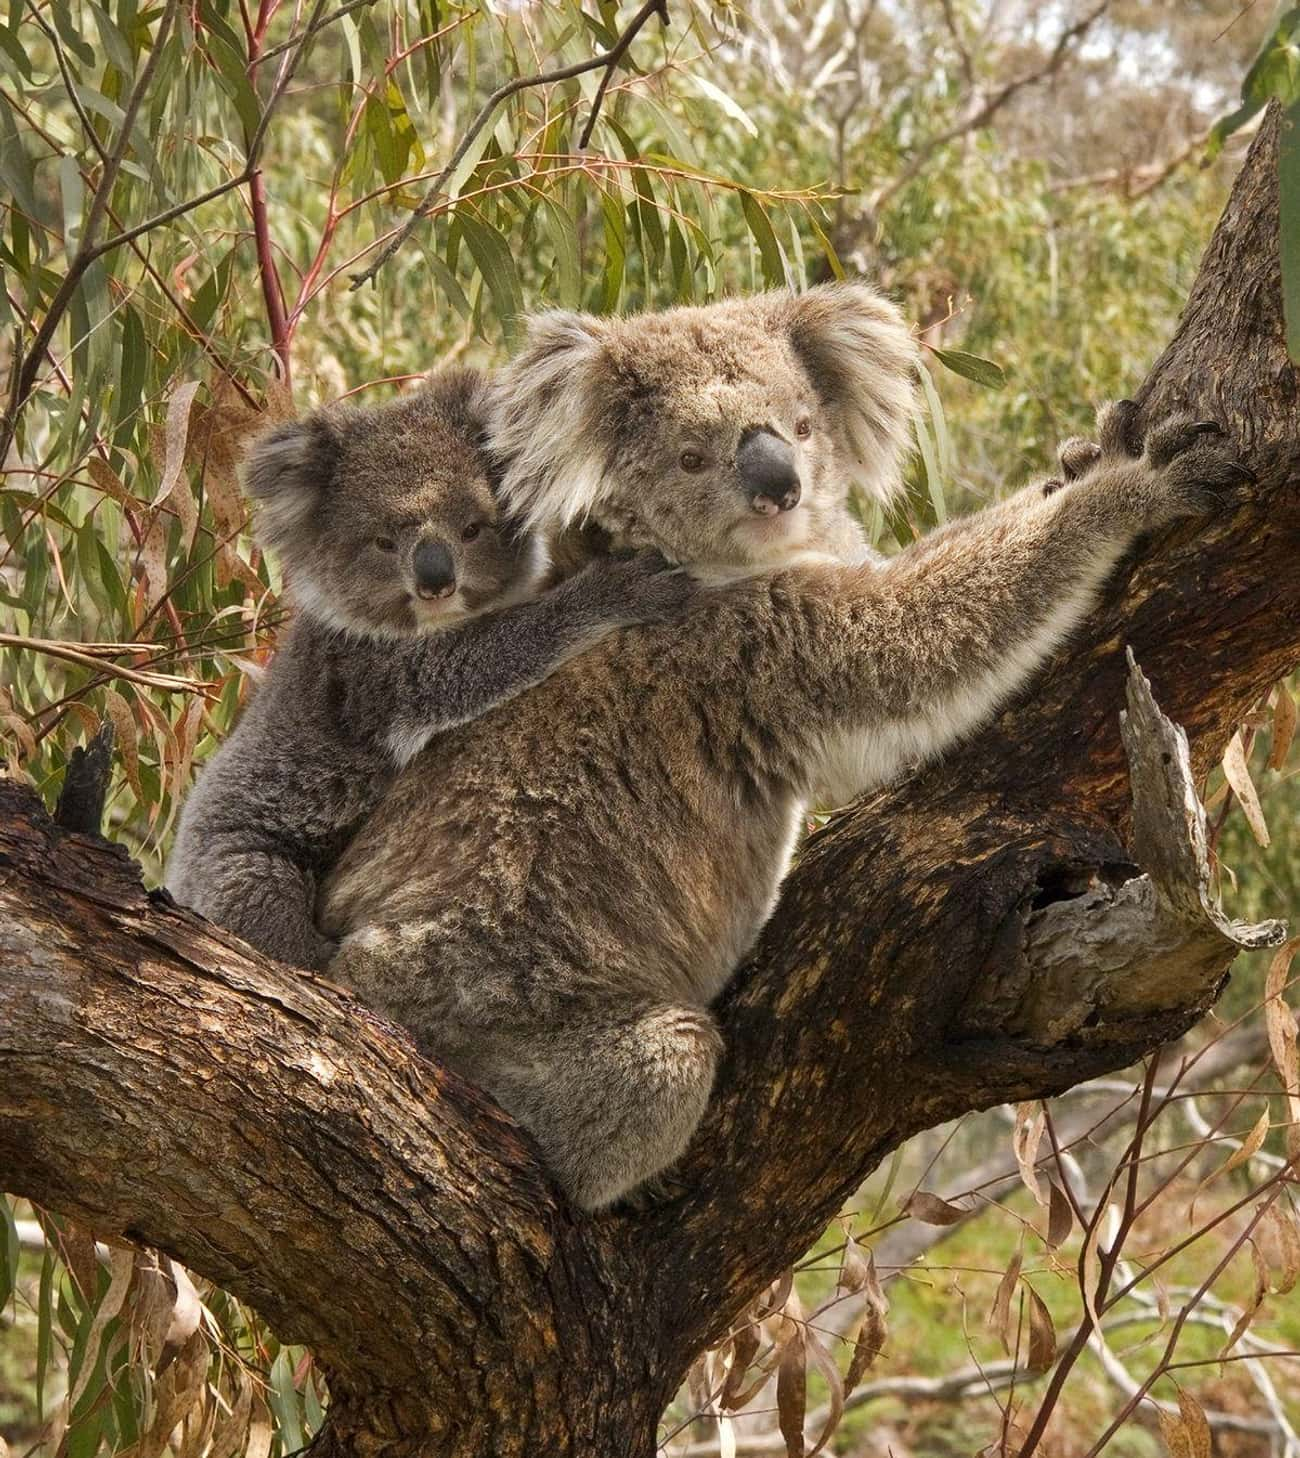 Koala Young Eat Their Mom' is listed (or ranked) 3 on the list 9 Facts That Will Absolutely Ruin Your Perception of Koalas